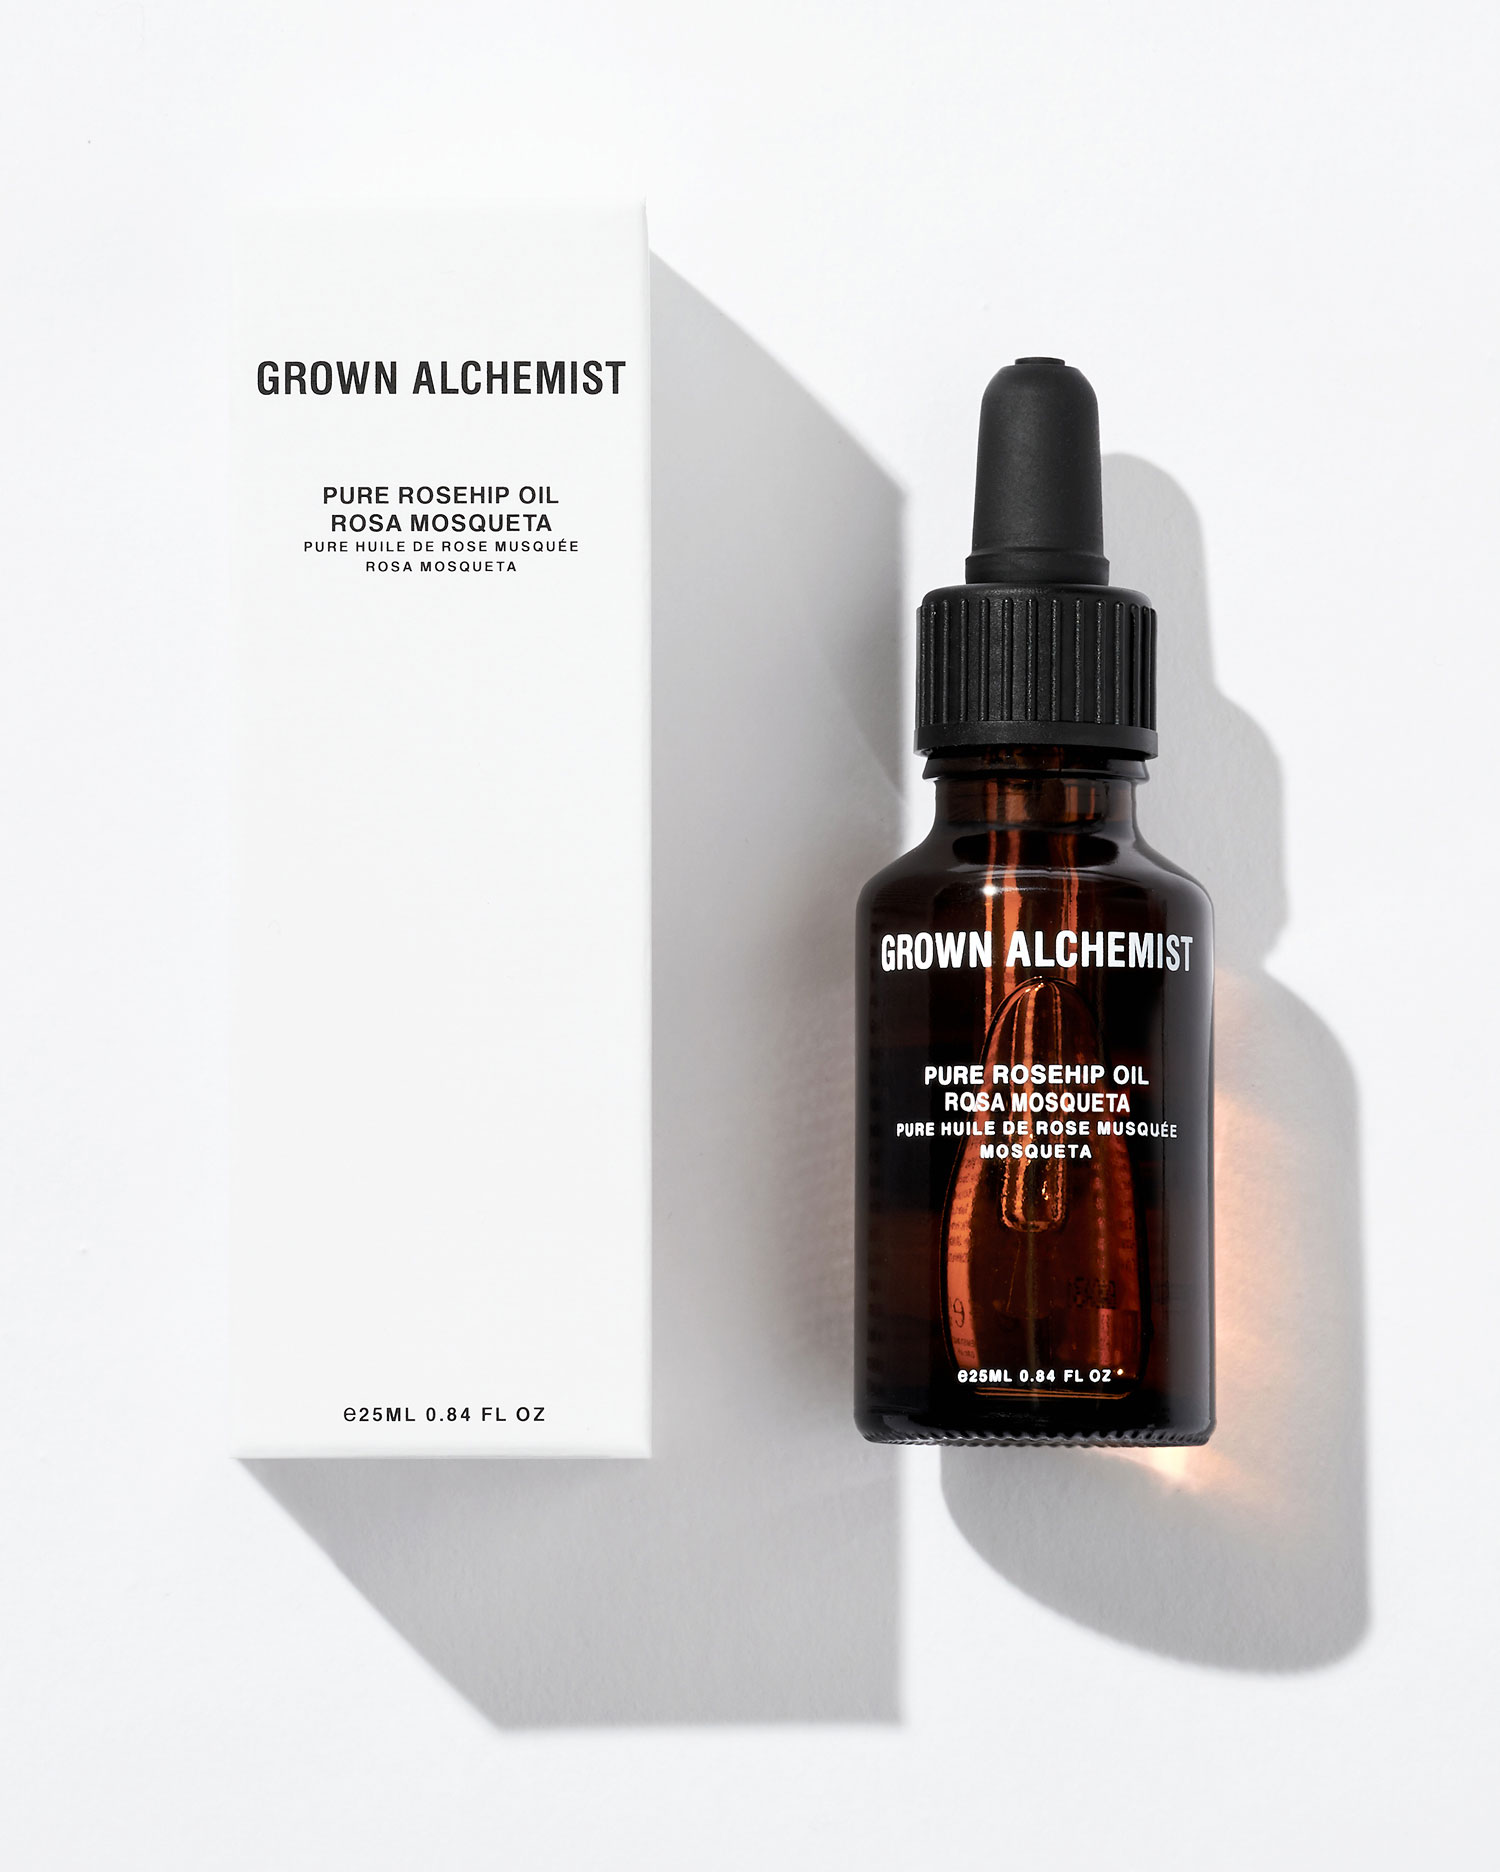 Grown Alchemist - Pure Rosehip Oil